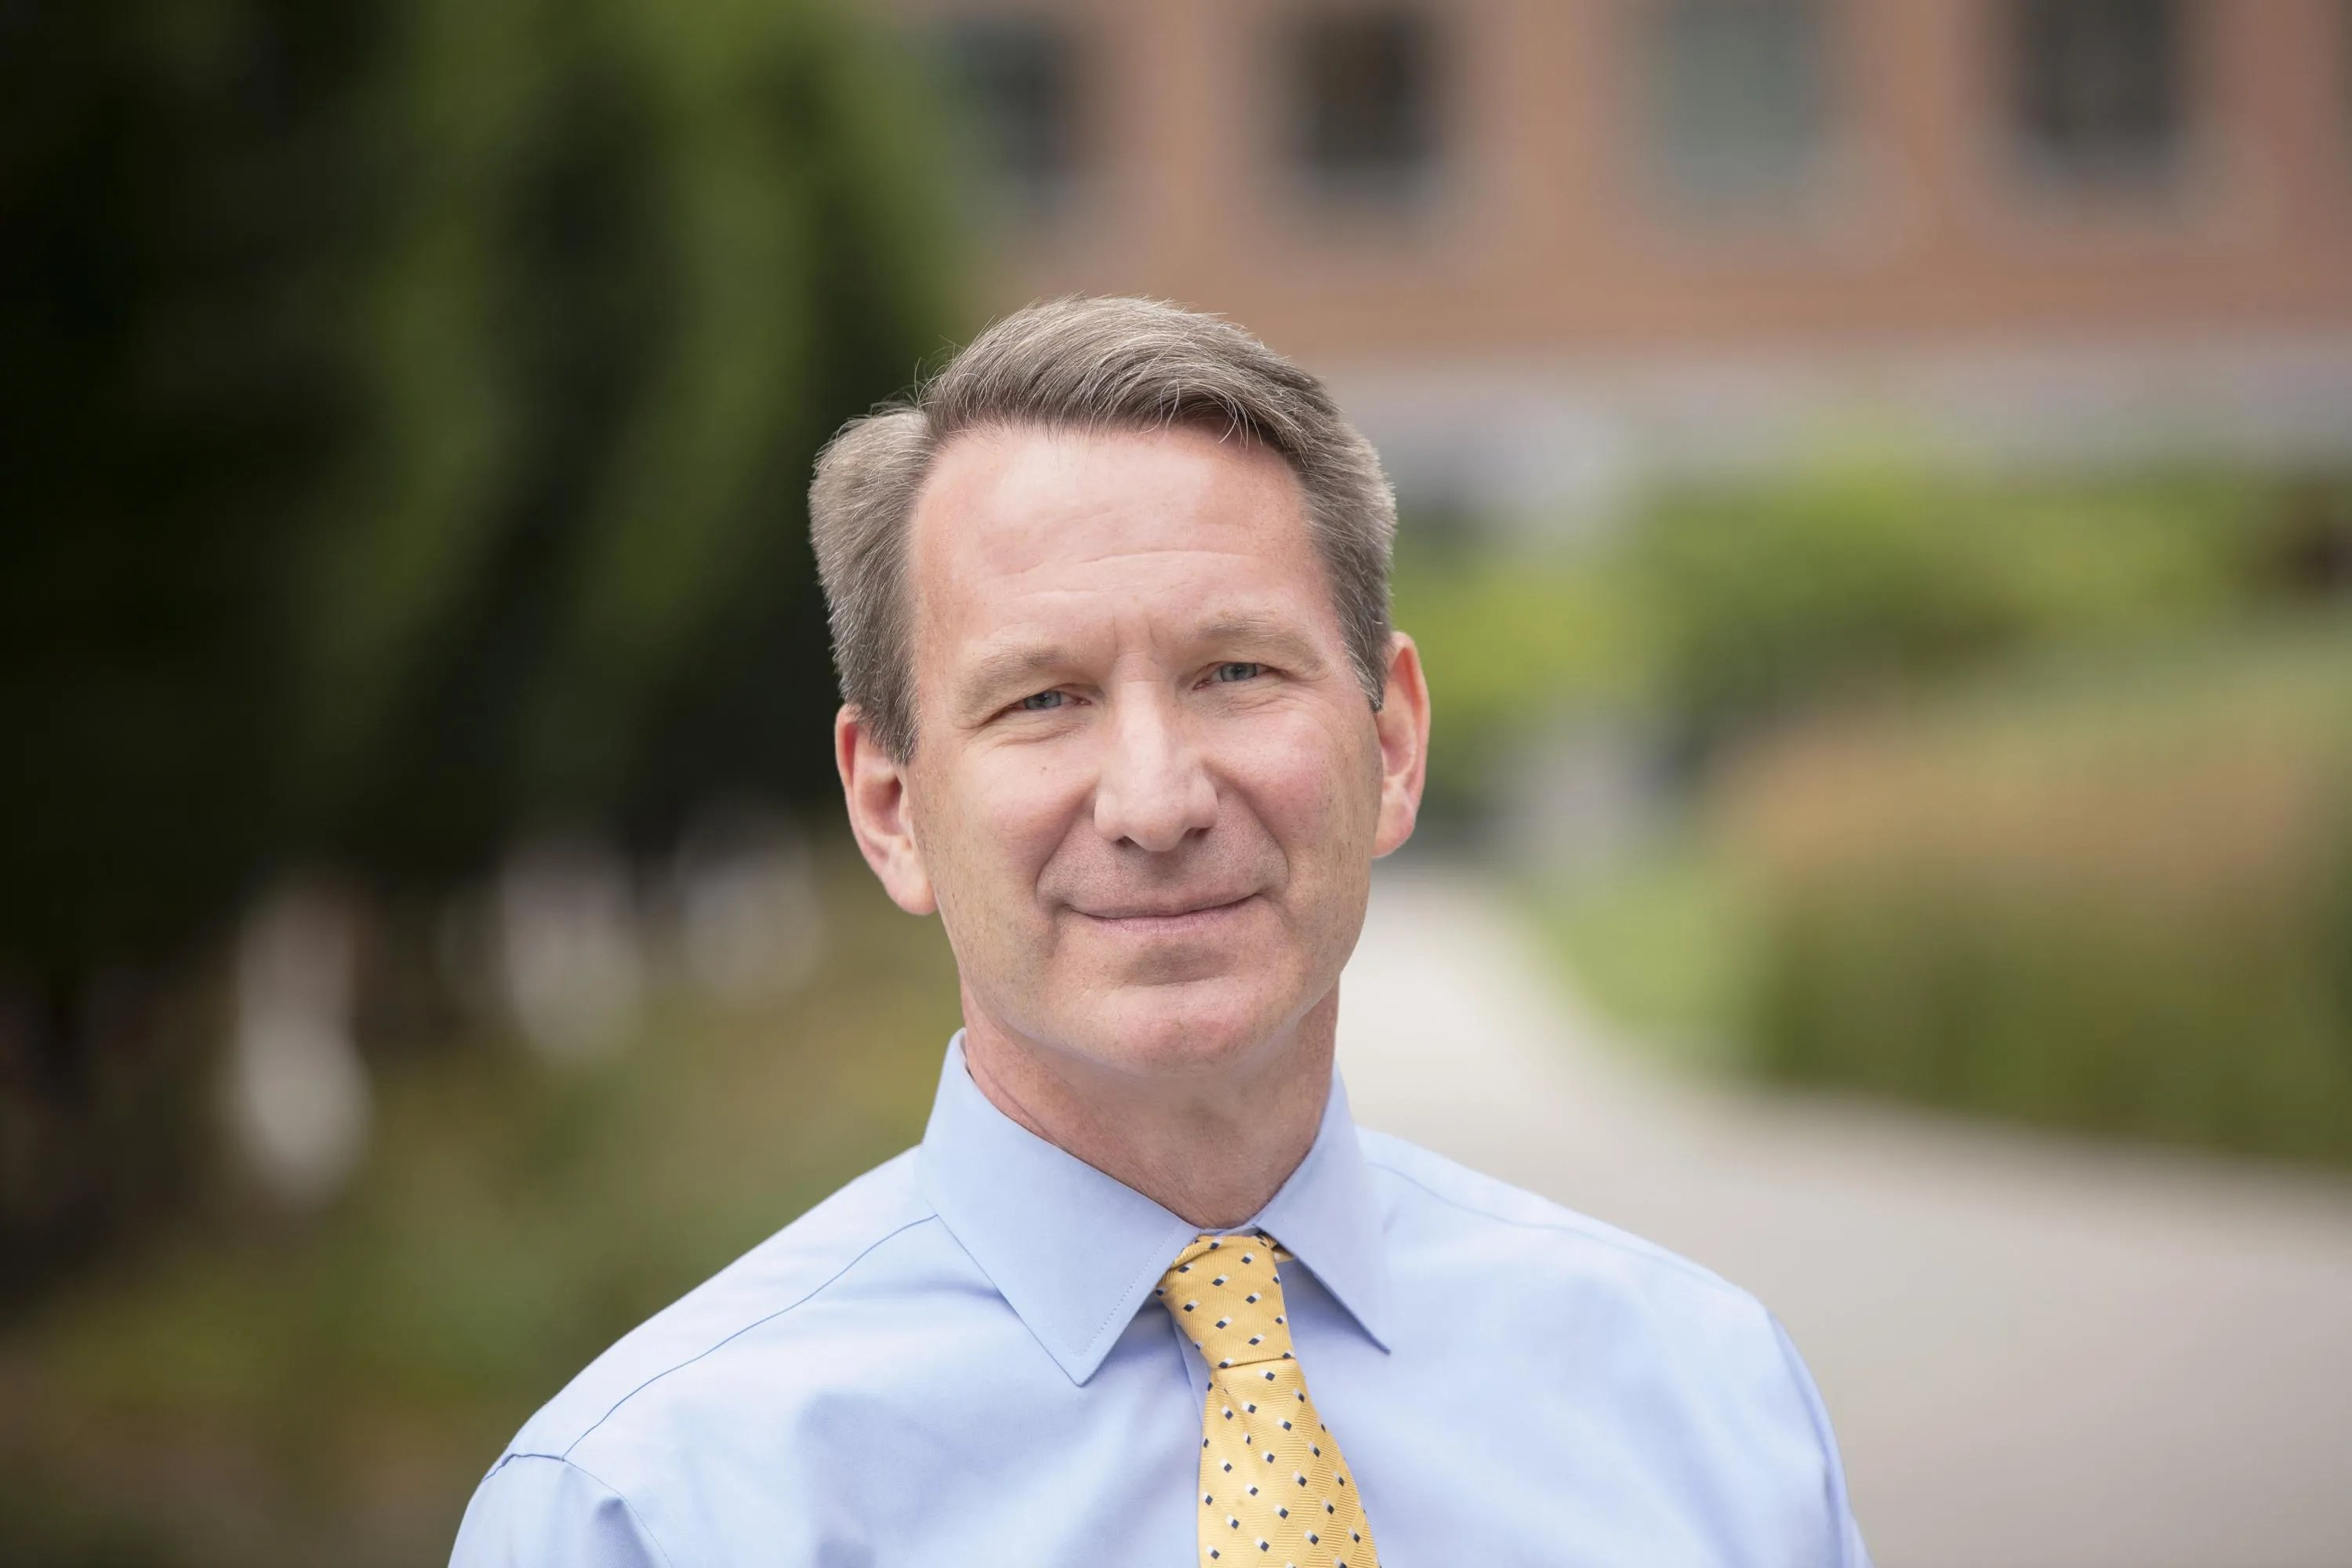 Dr Norman E. Sharpless, Director of the National Cancer Institute